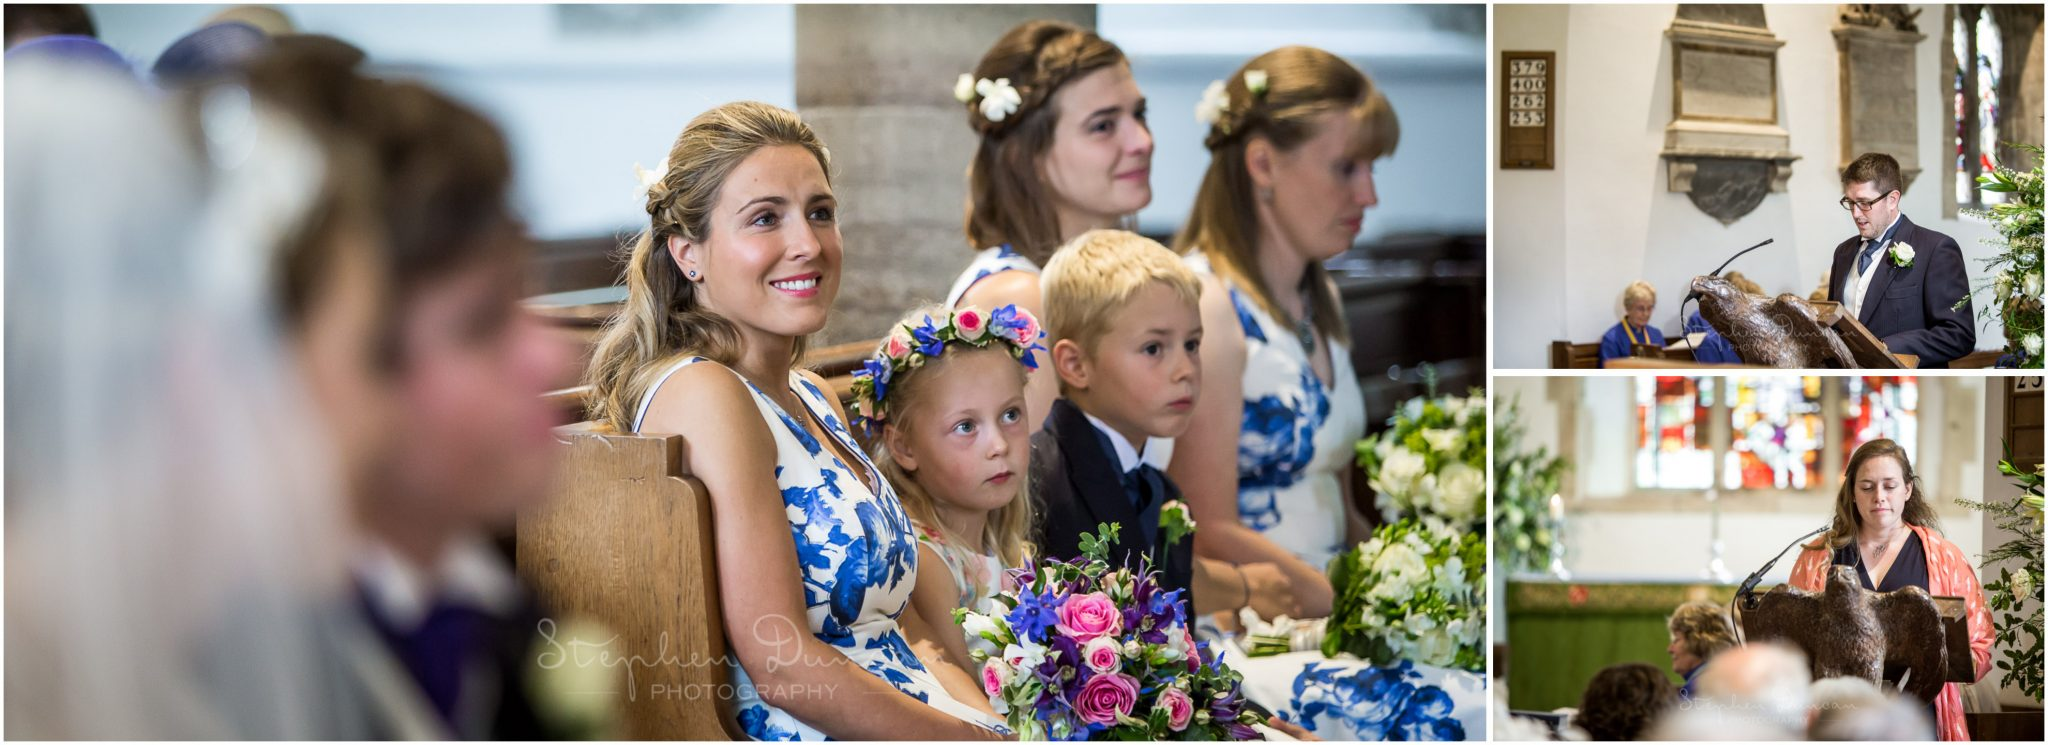 Lymington wedding photography bridesmaids watching readings